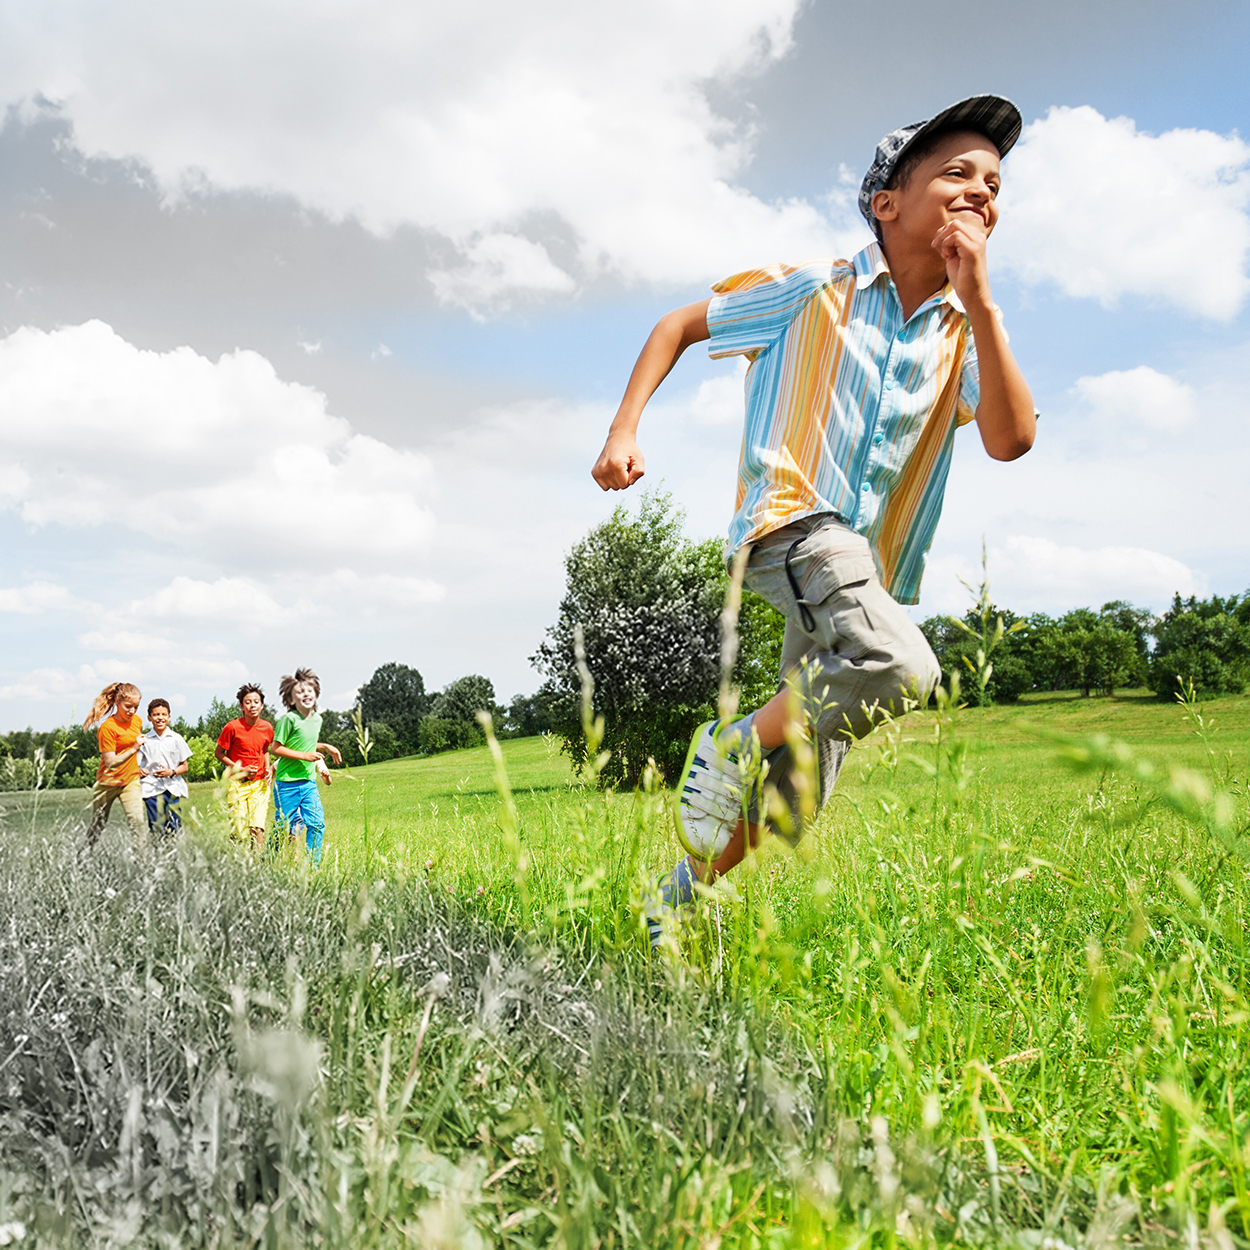 Excited boy runs away from his mates in field